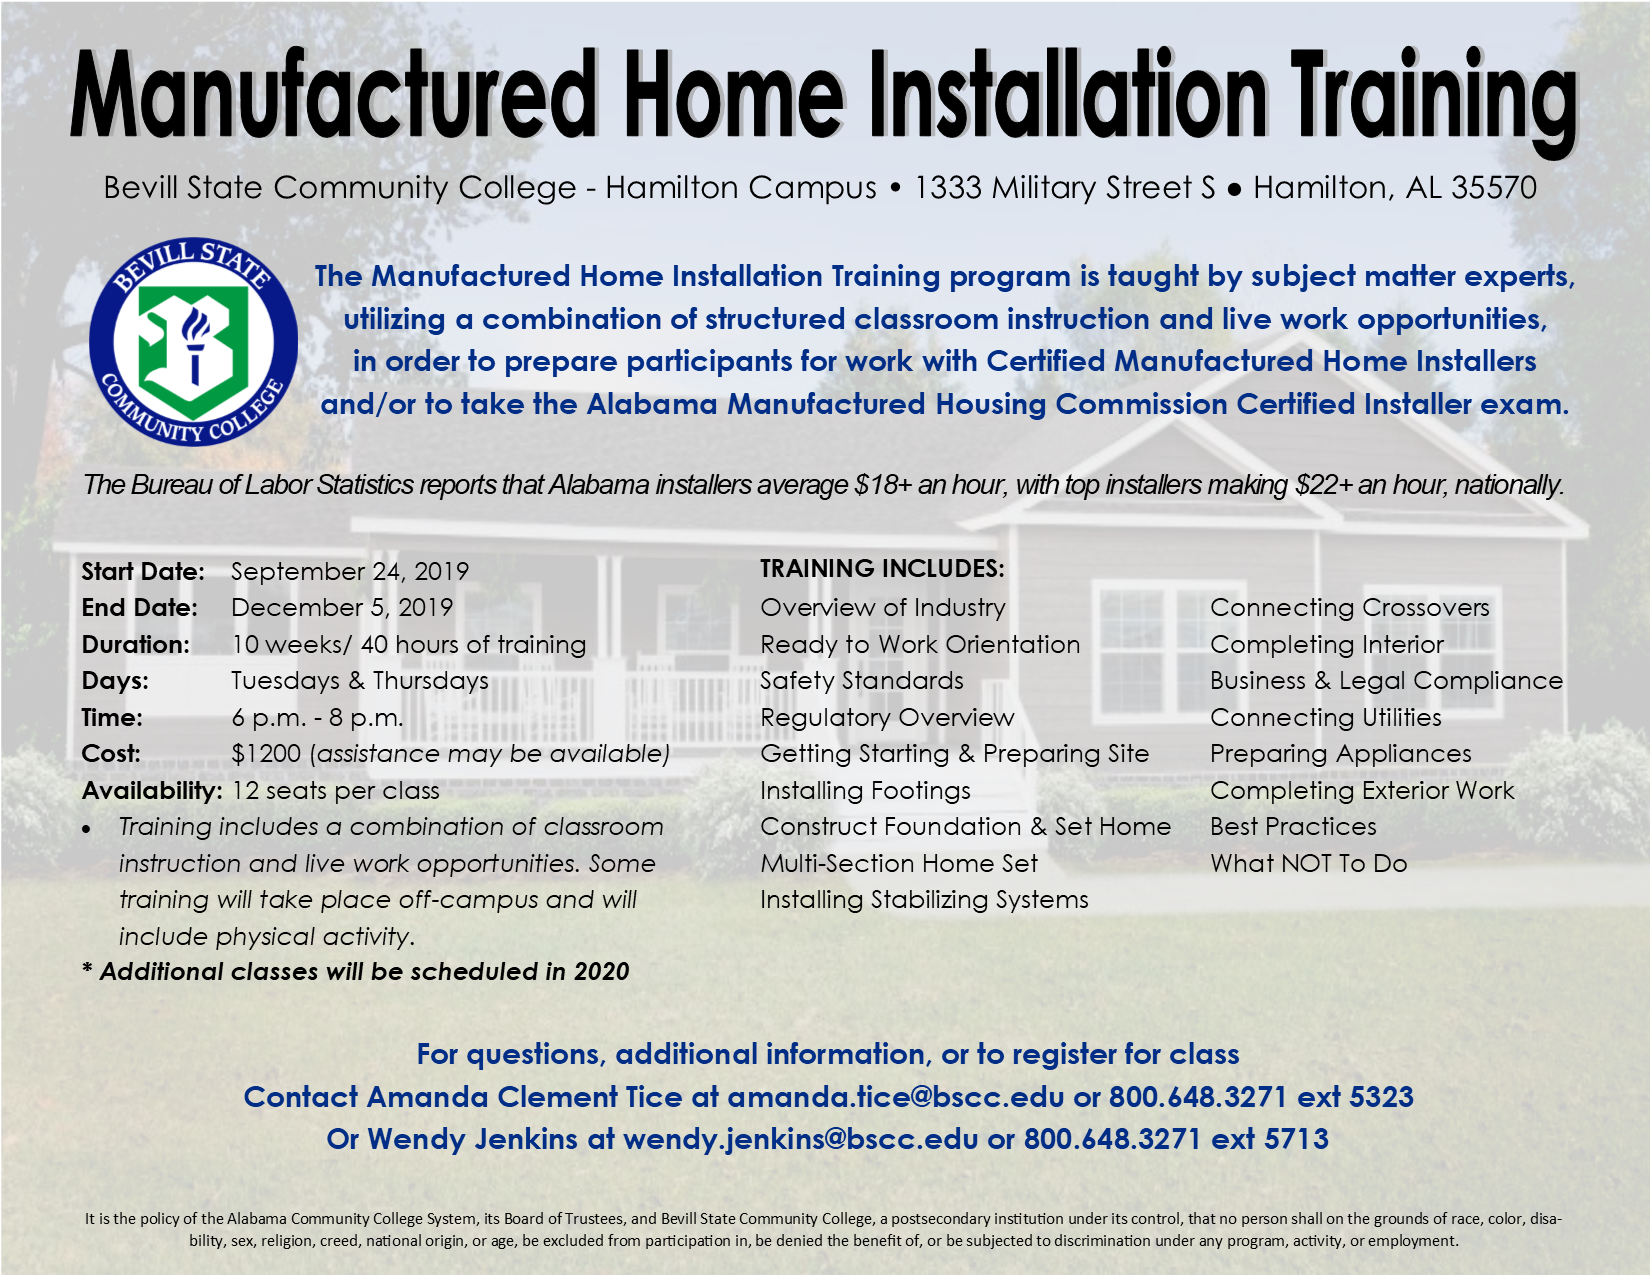 Manufactured Home Installation Training Flyer